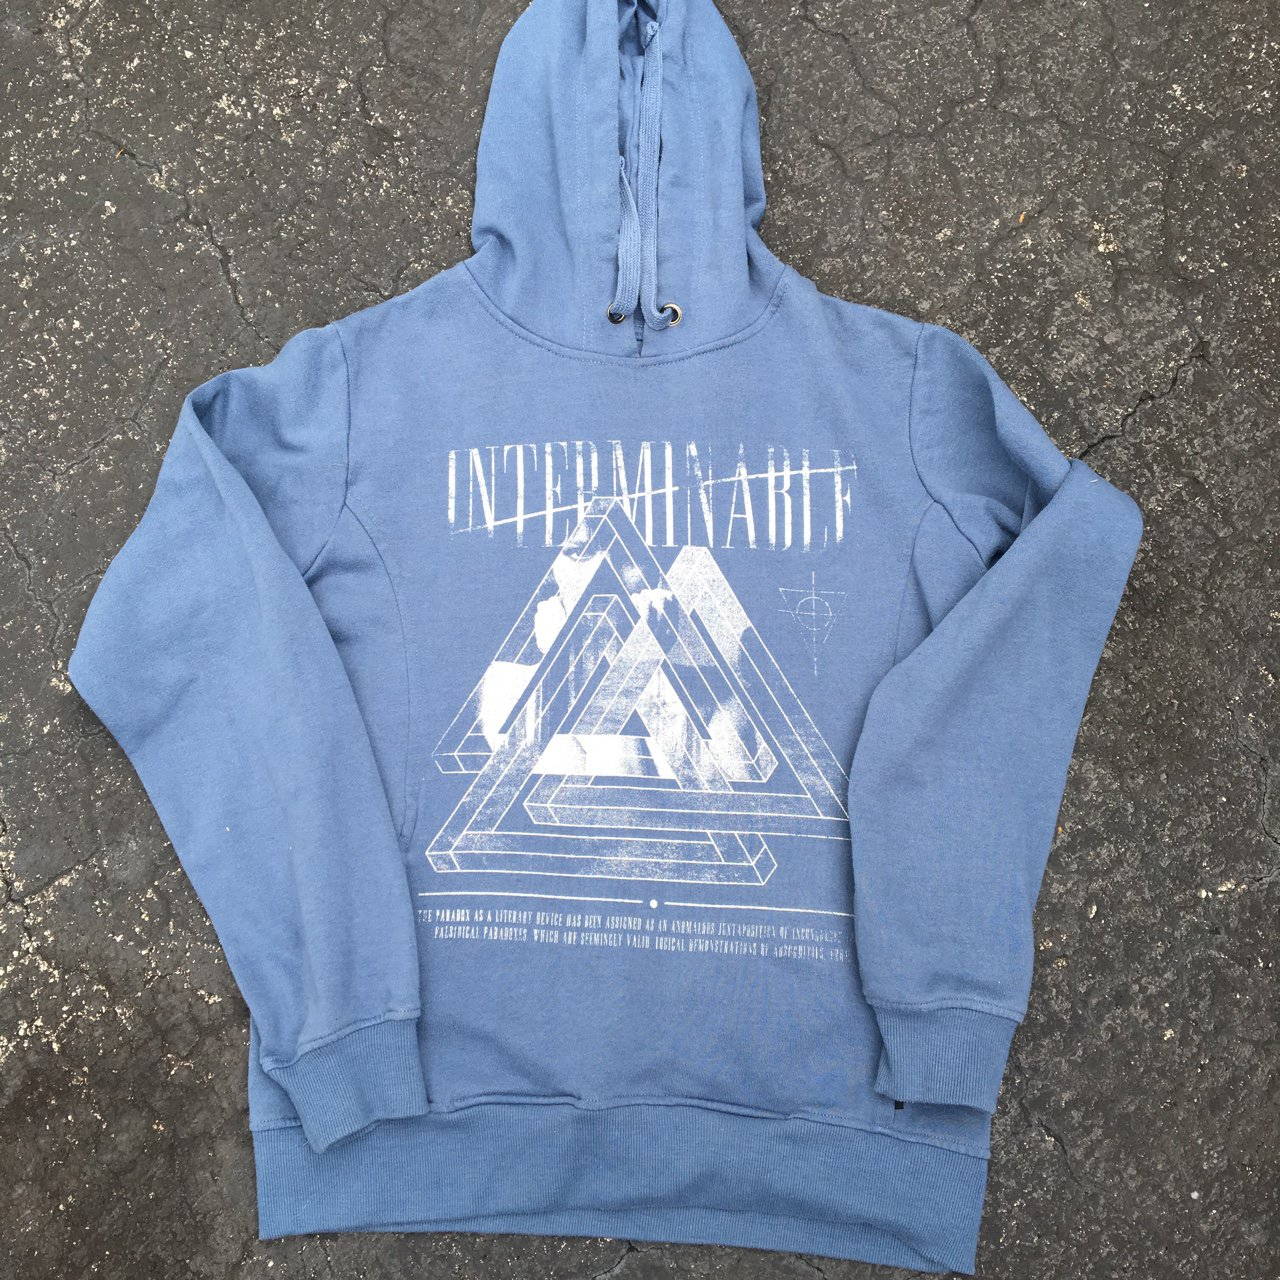 Cotton on hoodie in size small but fits more like a medium e12251b02